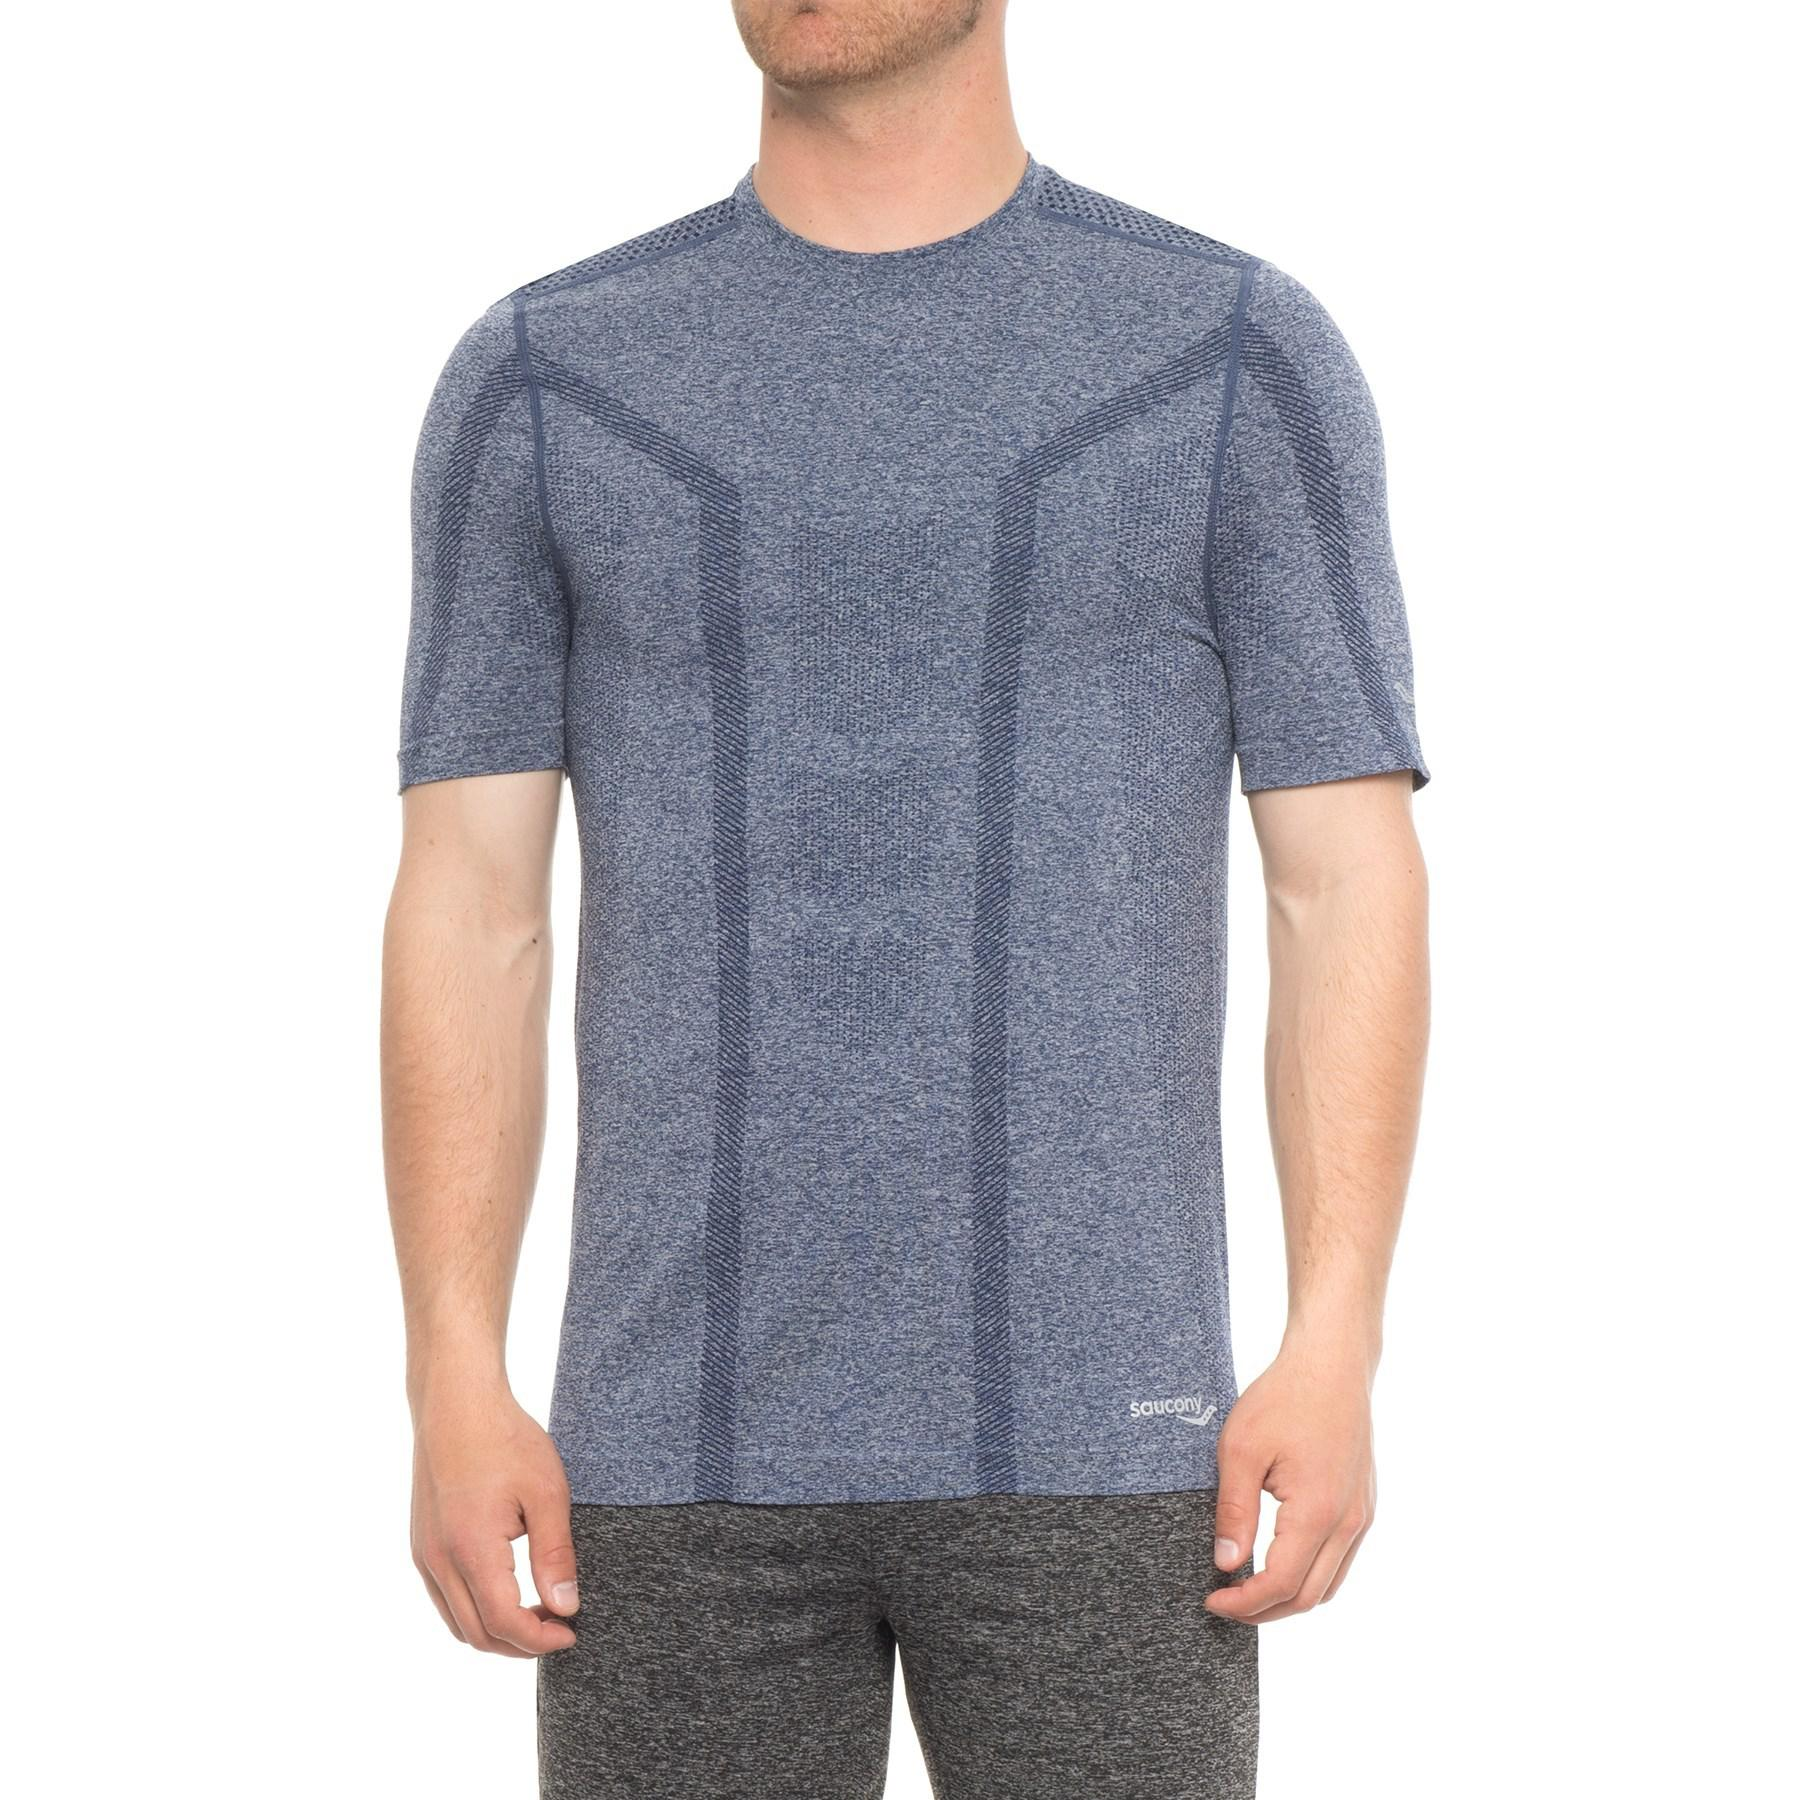 fca0a079 Saucony - Blue Seamless Body-mapped Heathered Shirt for Men - Lyst. View  fullscreen